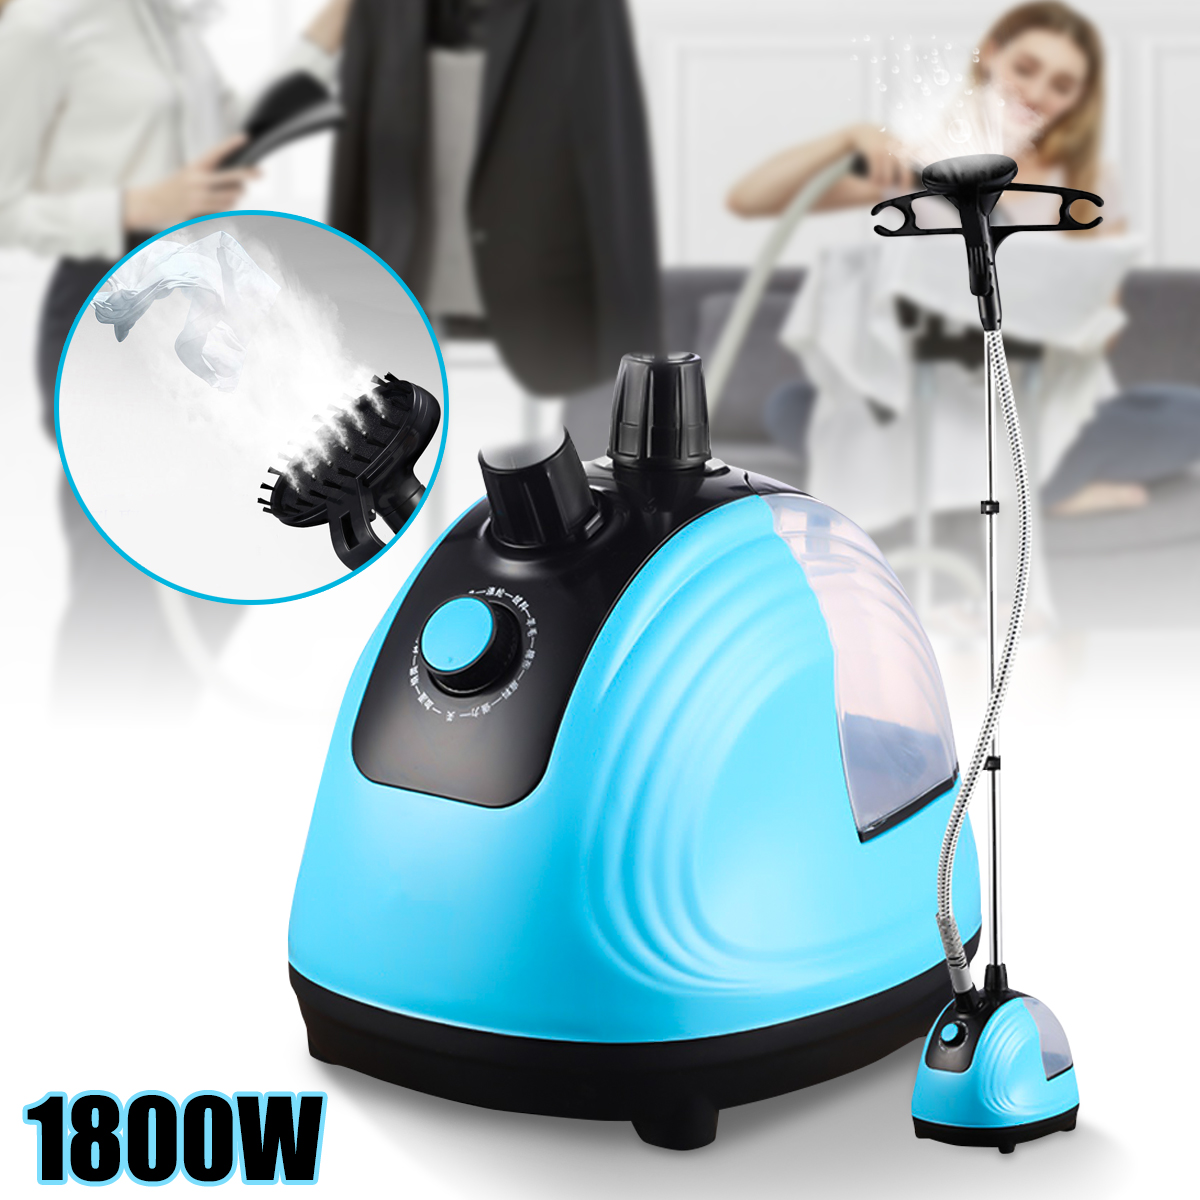 1800W HandHeld Garment Steamer Adjustable Household Clothes Iron Steamer 220V Hanging Ironing Machine Mini Ironer Steamer russia only 2000w garment steamer household handheld ironing machine 10 gear adjustable vertical flat steam iron clothes steamer